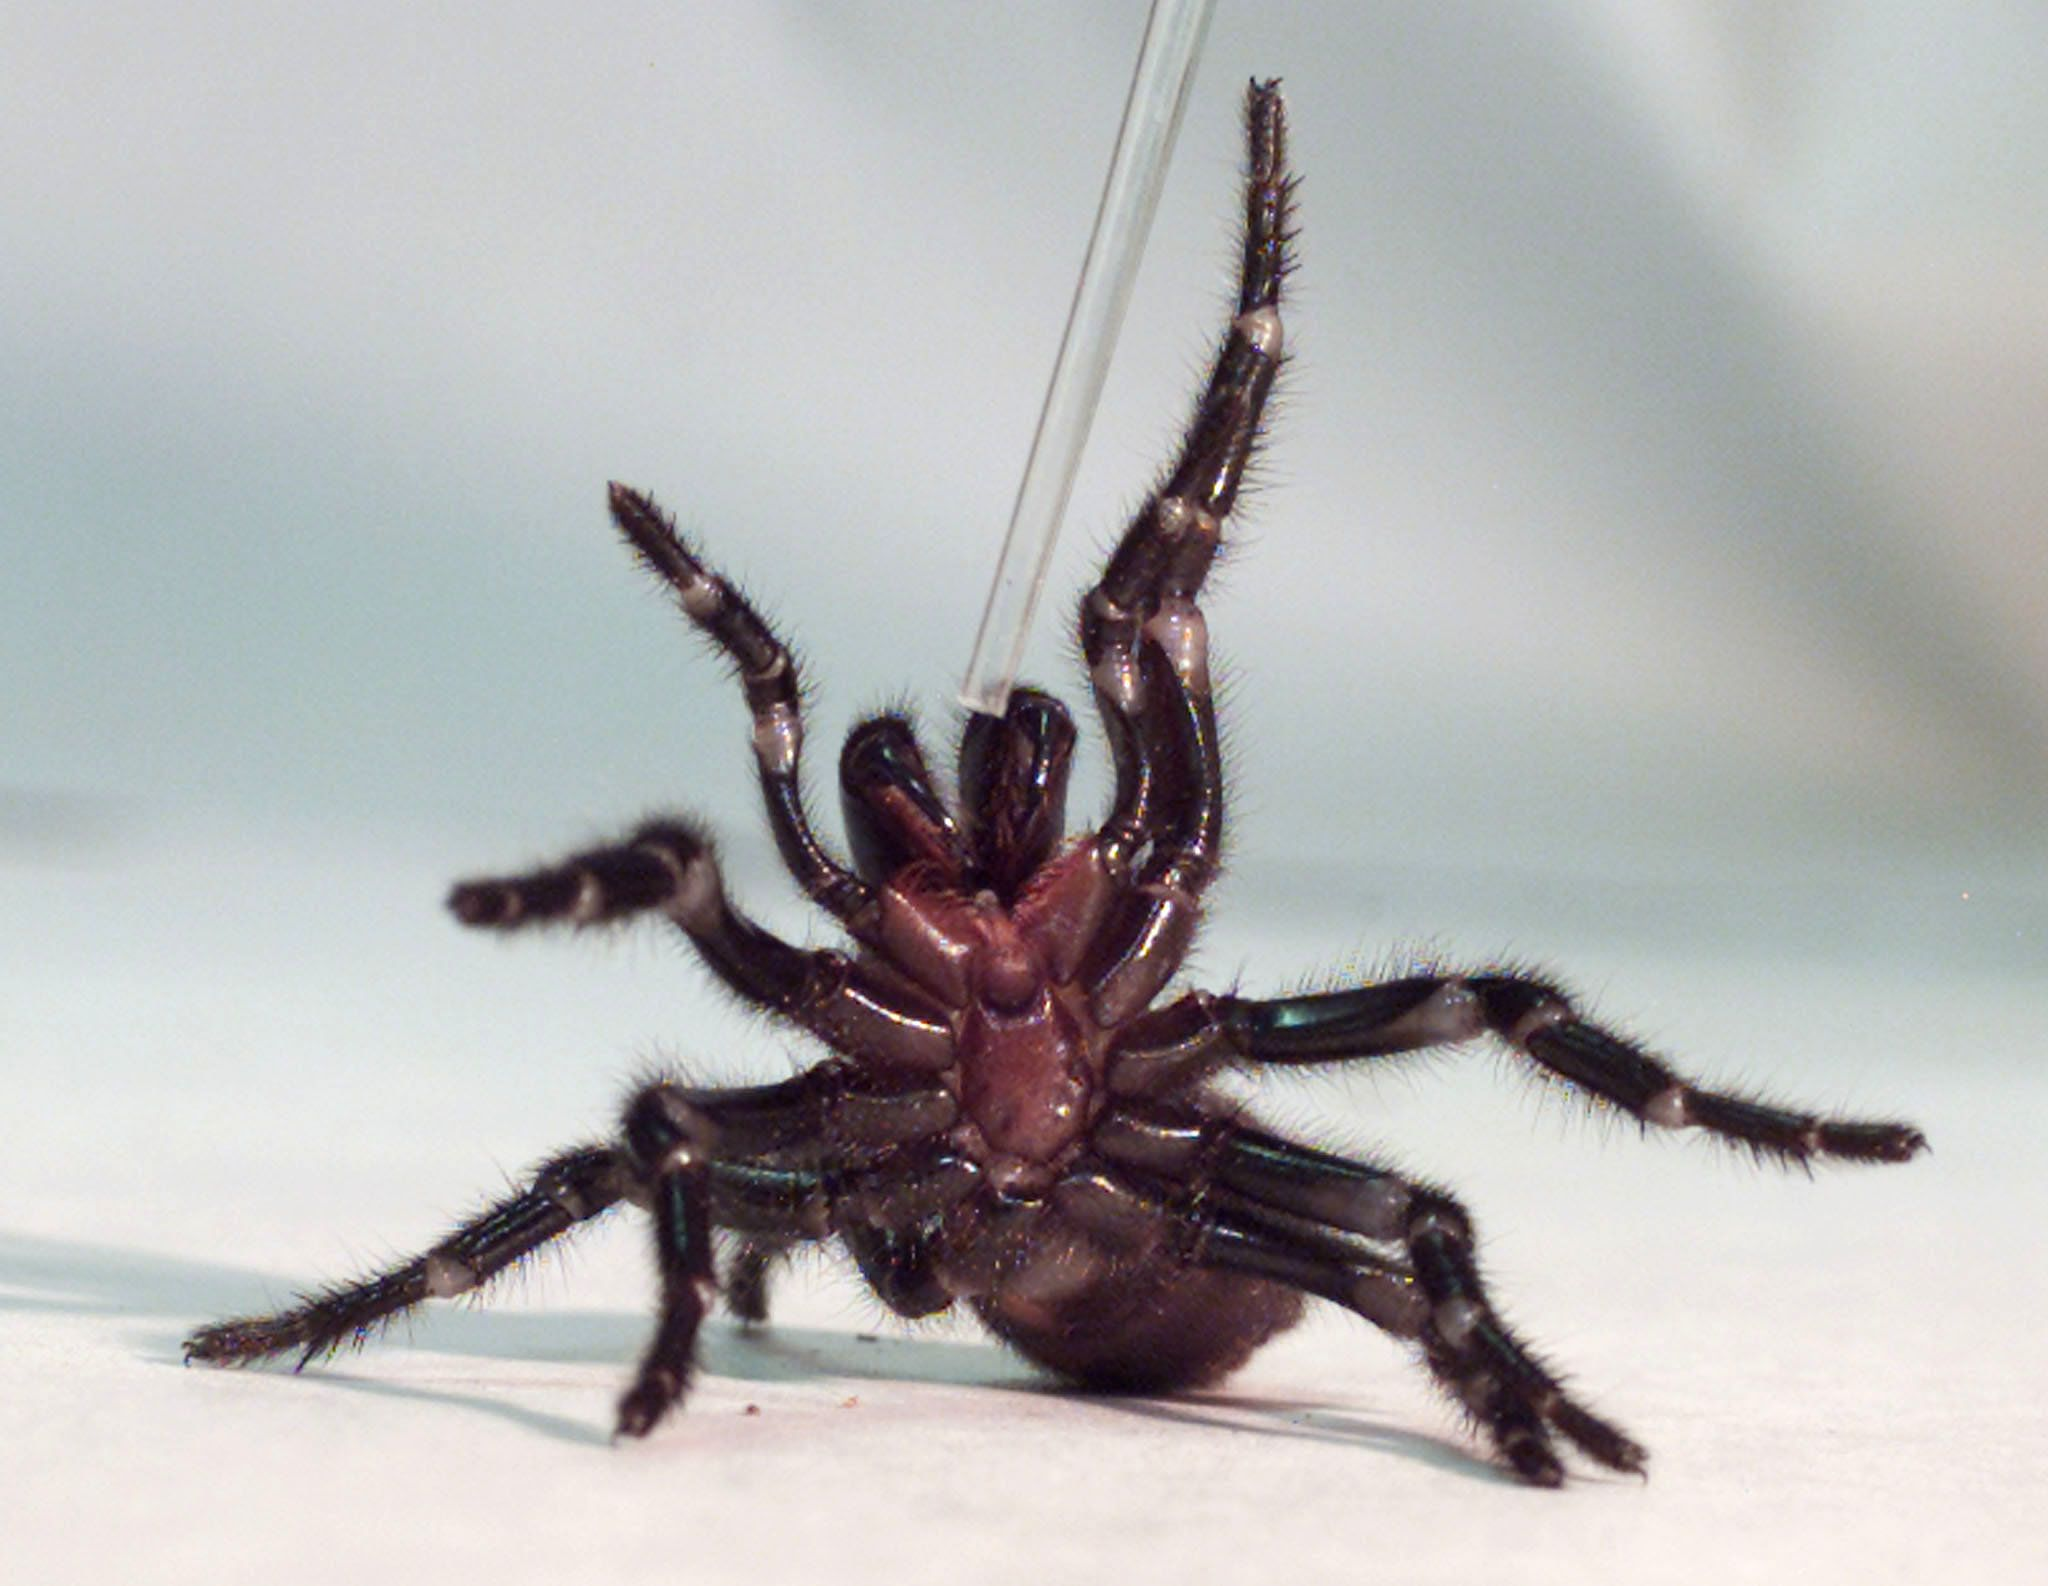 Deadly Spider Venom Could Protect The Brain After A